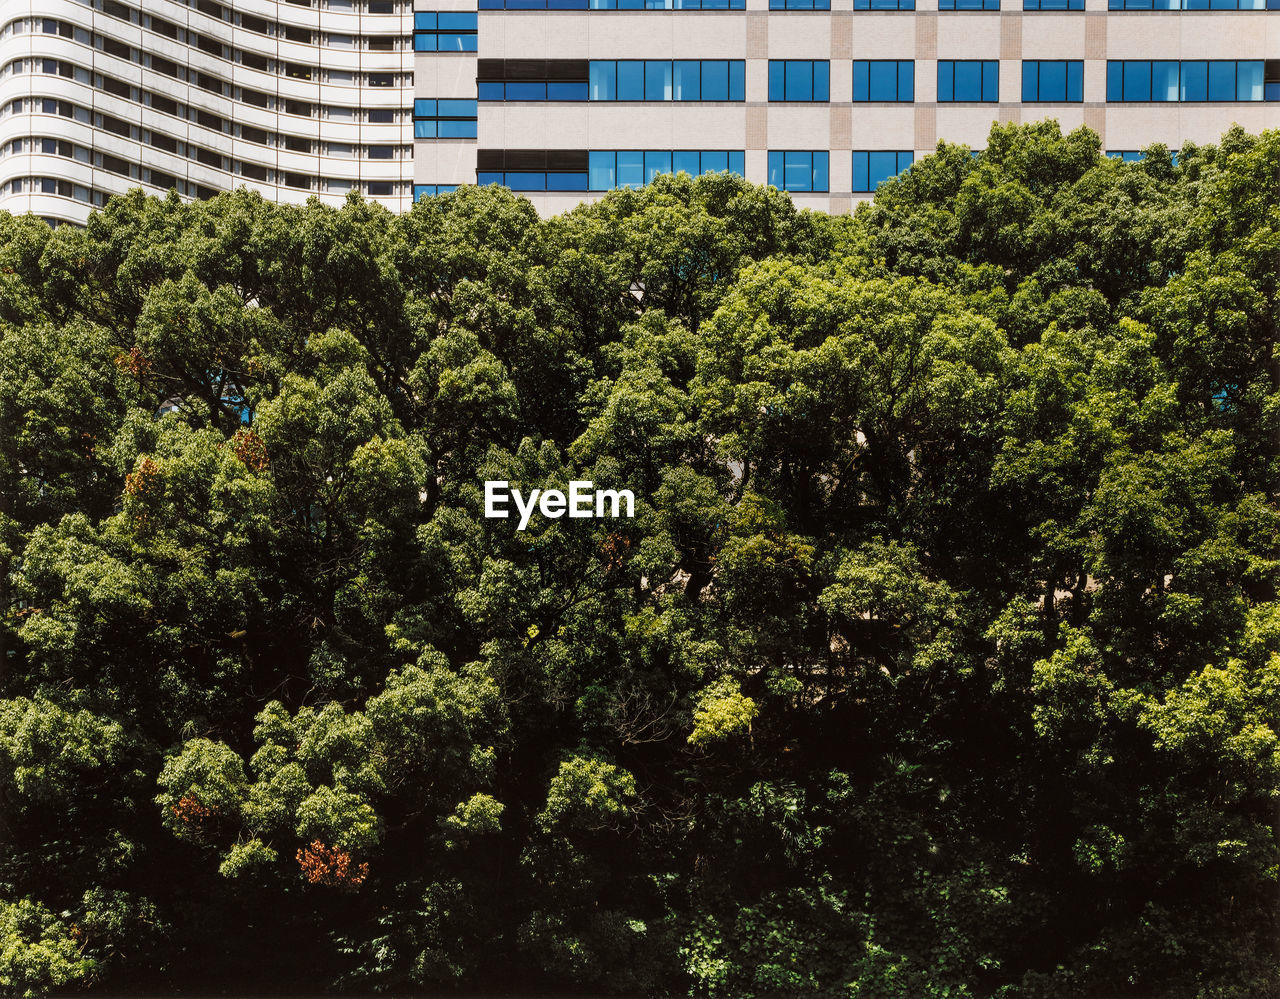 Trees against building